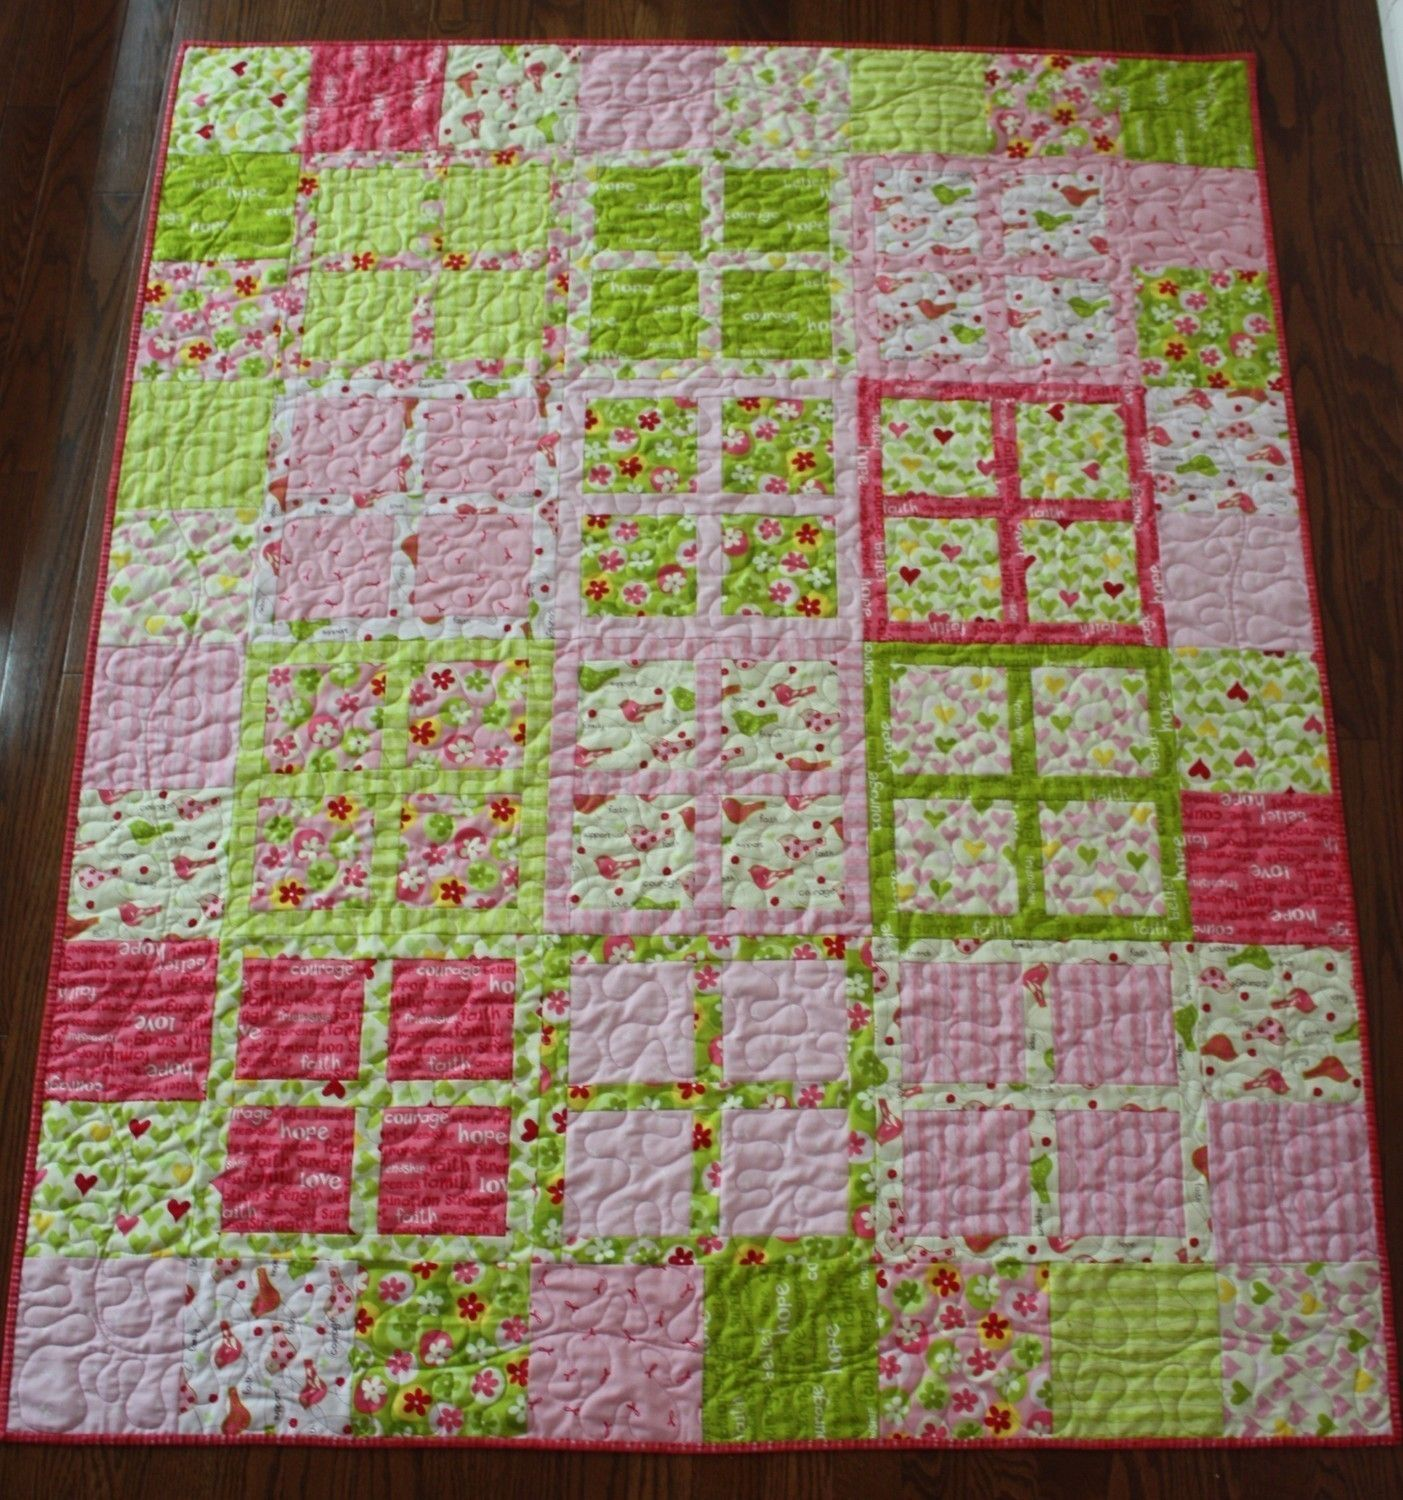 Beginner Quilt Patterns For Quilting: The 25+ Best Beginner Quilt Patterns Ideas On Pinterest